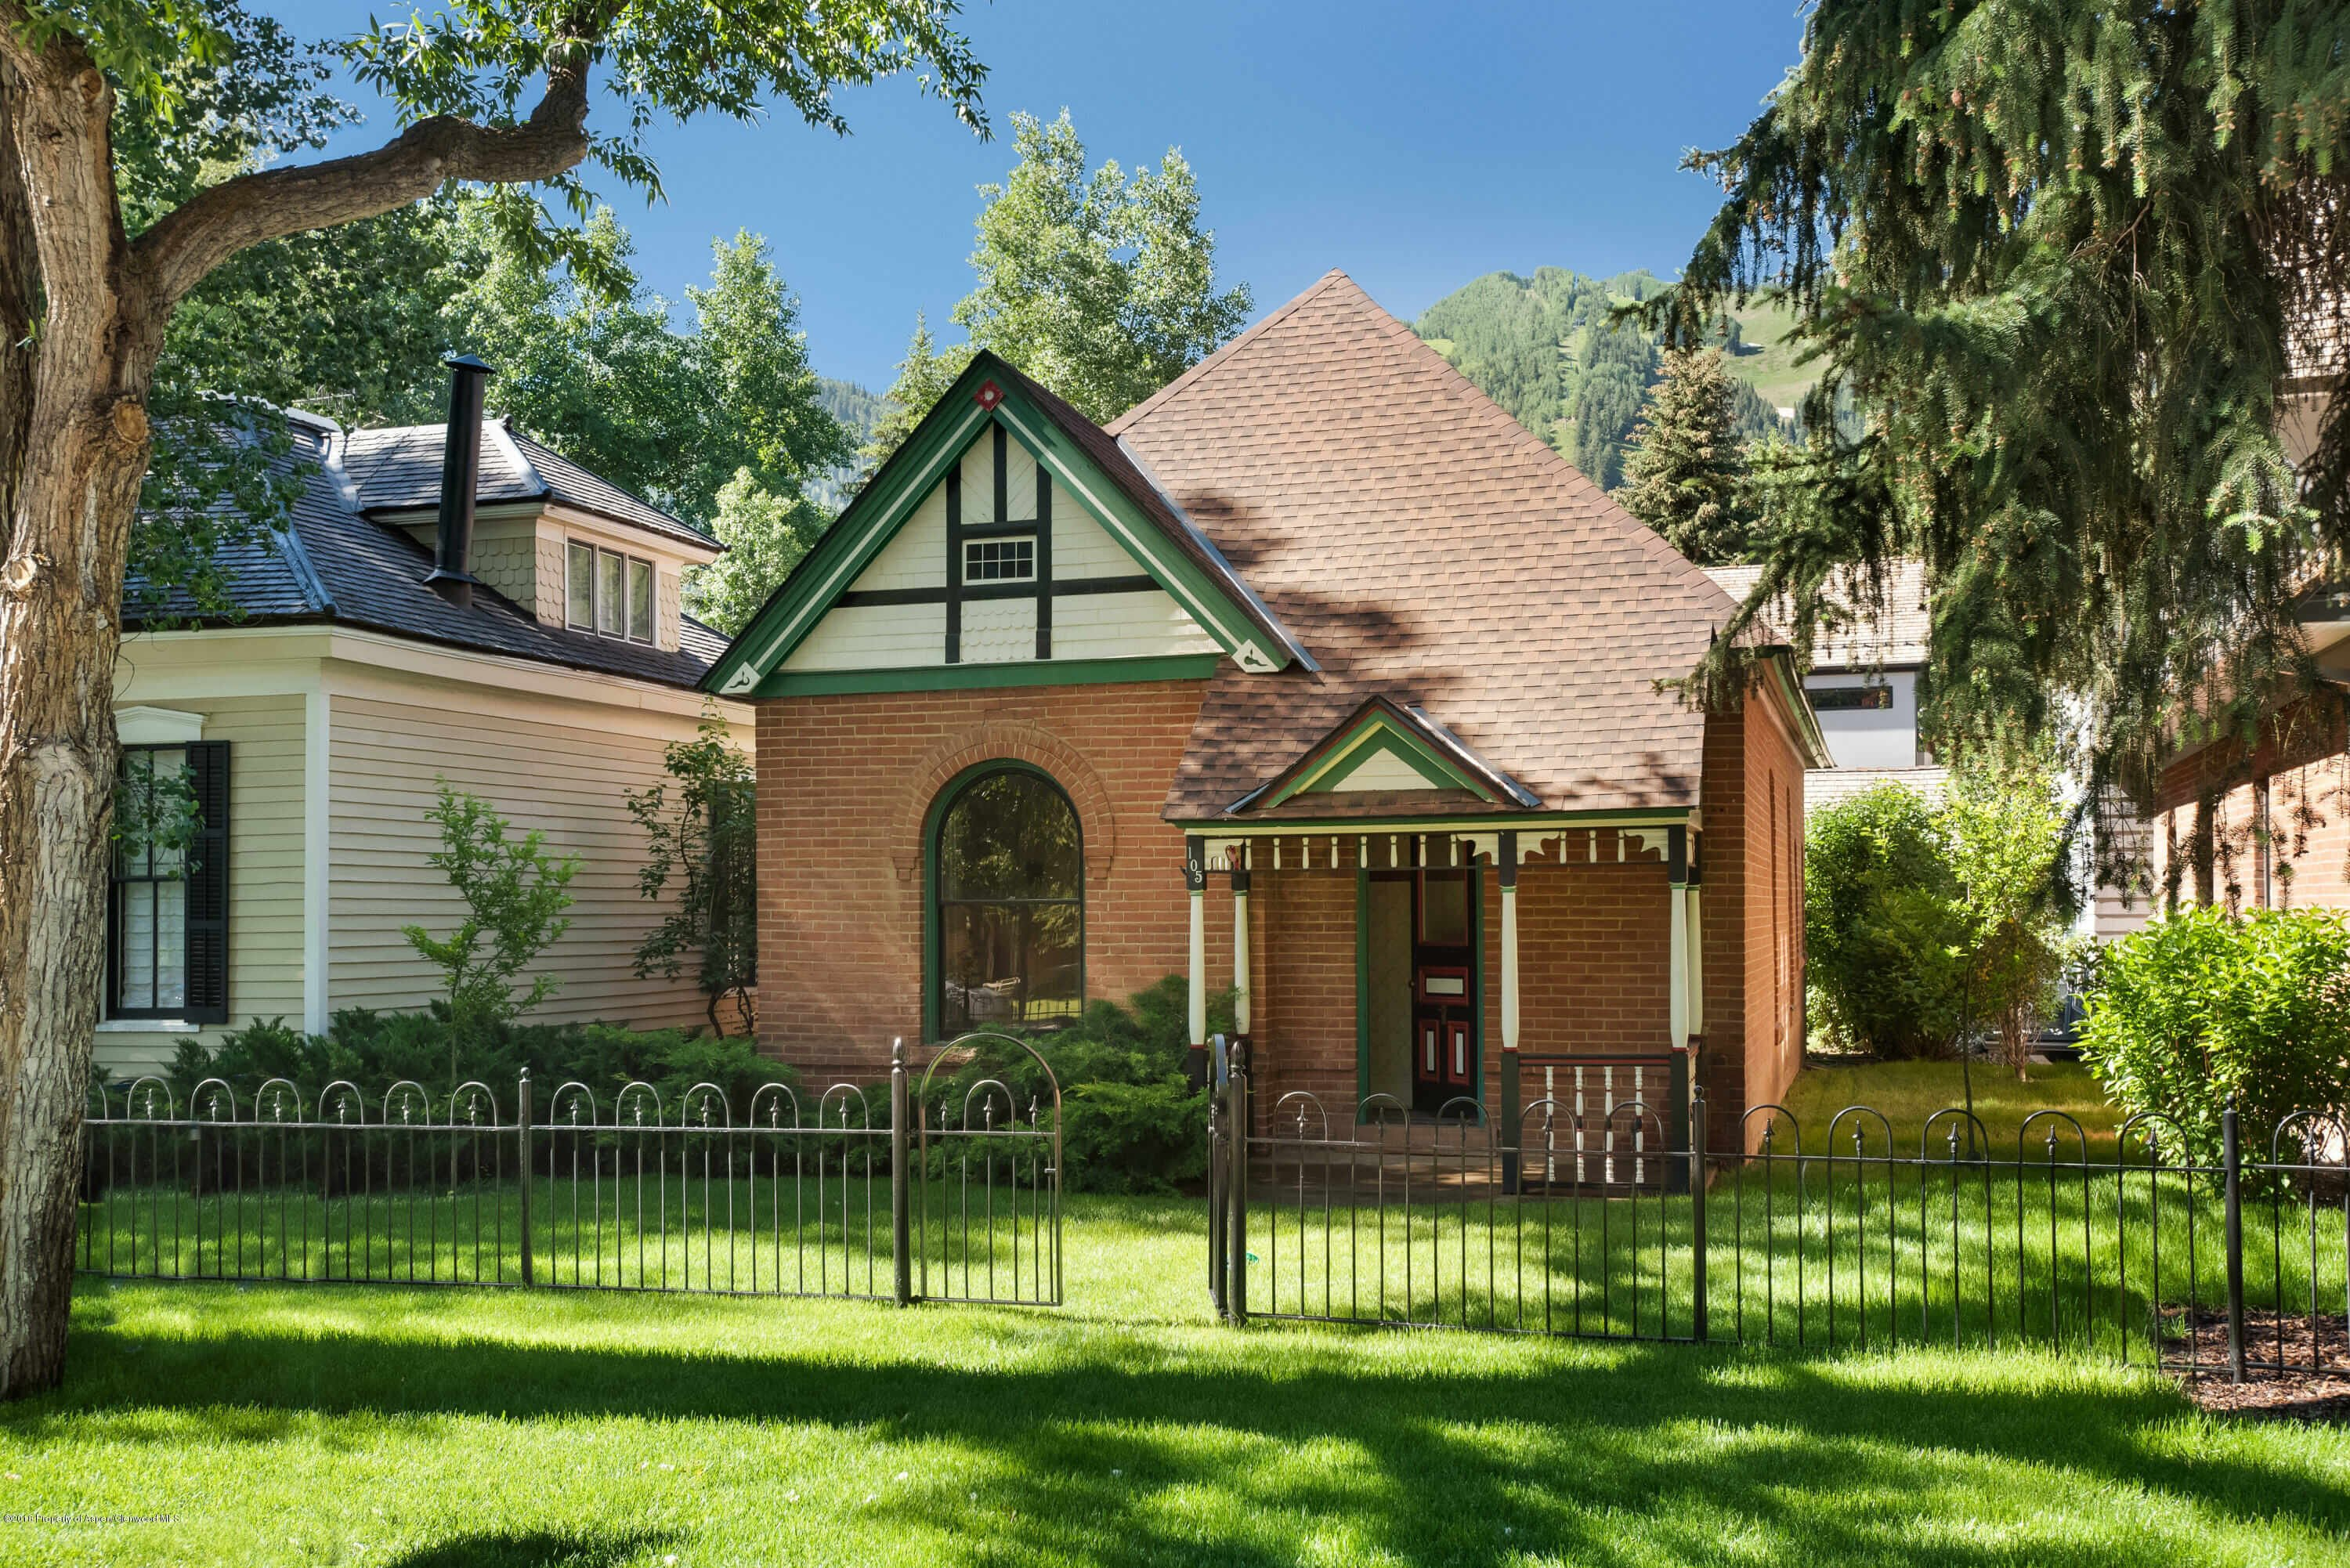 105 E Hallam St – Aspen Miners Cabin Re-Listed 3 Weeks Later at 41% Over Cost Thumbnail